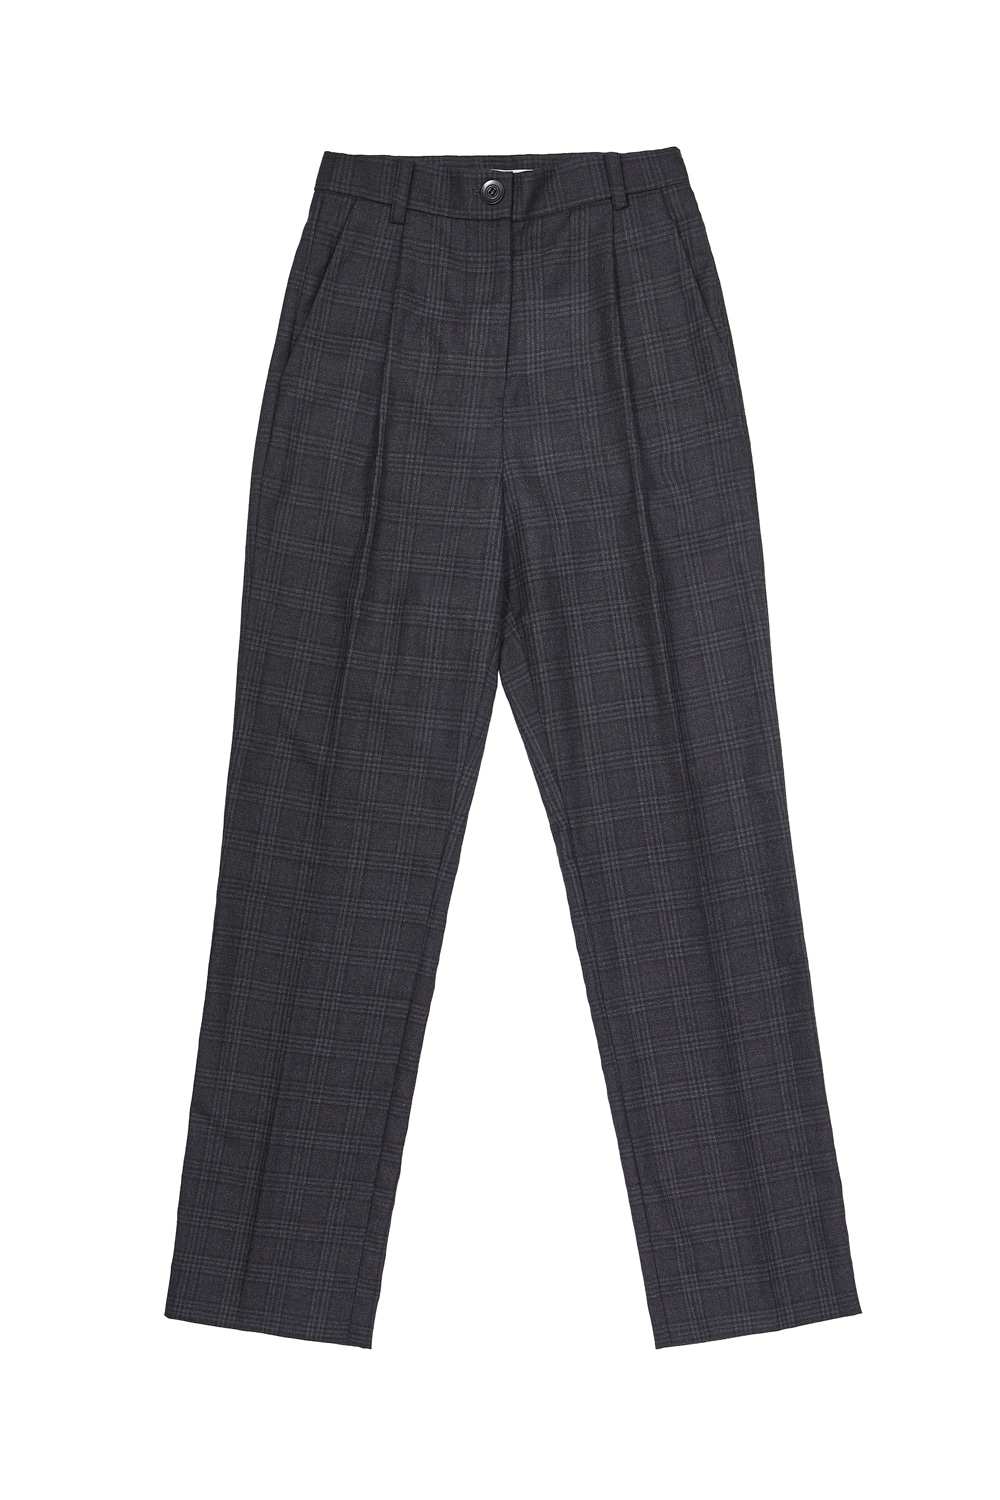 LONG SUIT PANTS_tartan black/gray